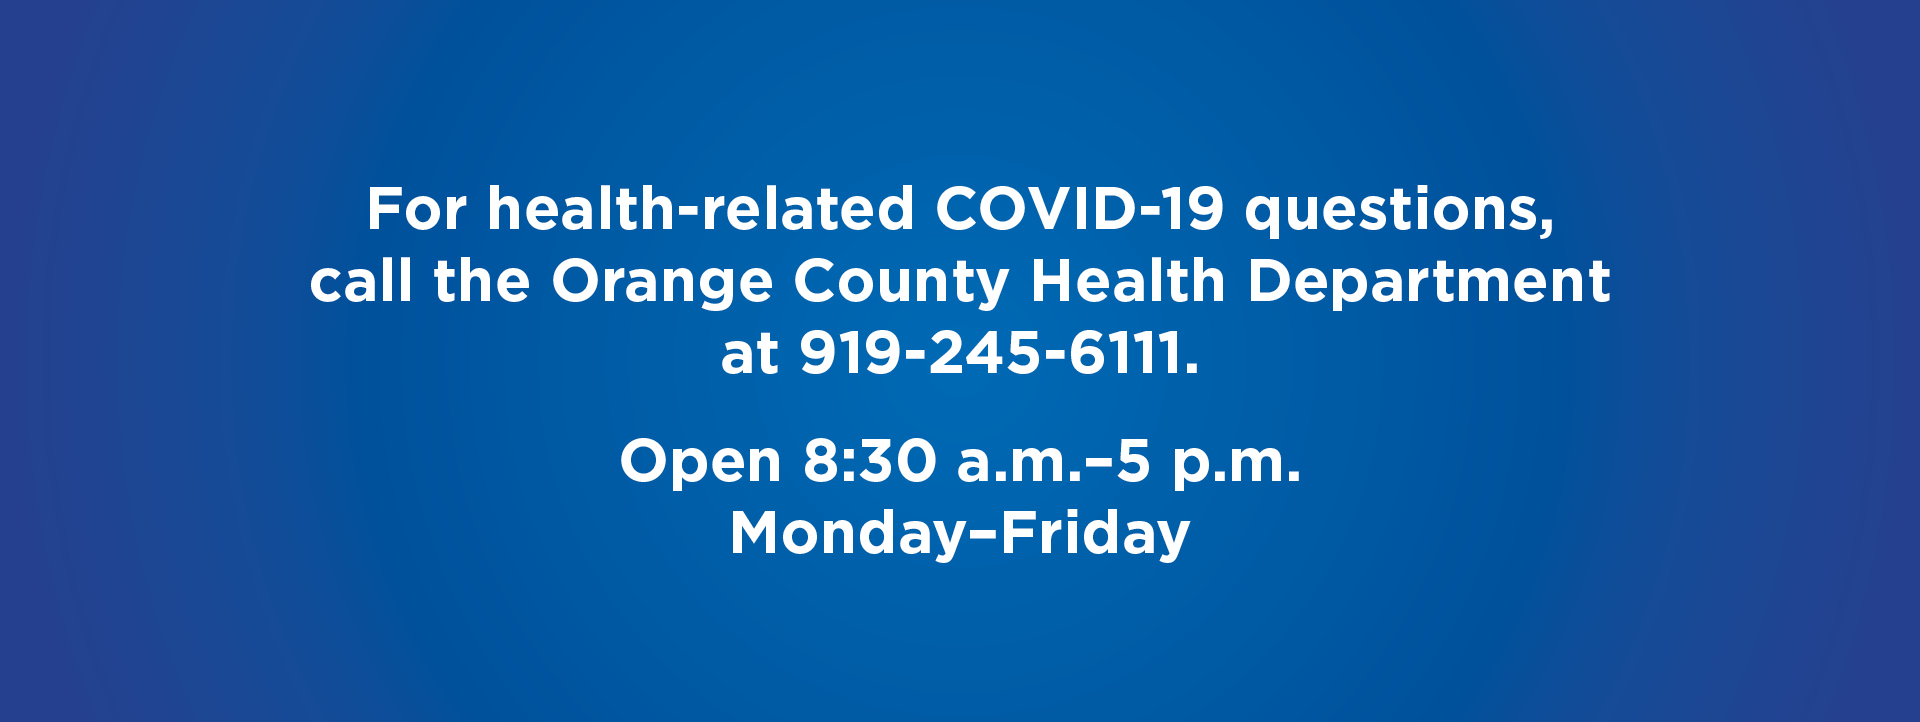 For health-related COVID-19 questions, call the Orange County Health Department  at 919-245-6111. Open 8:30 a.m.–5 p.m.  Monday–Friday